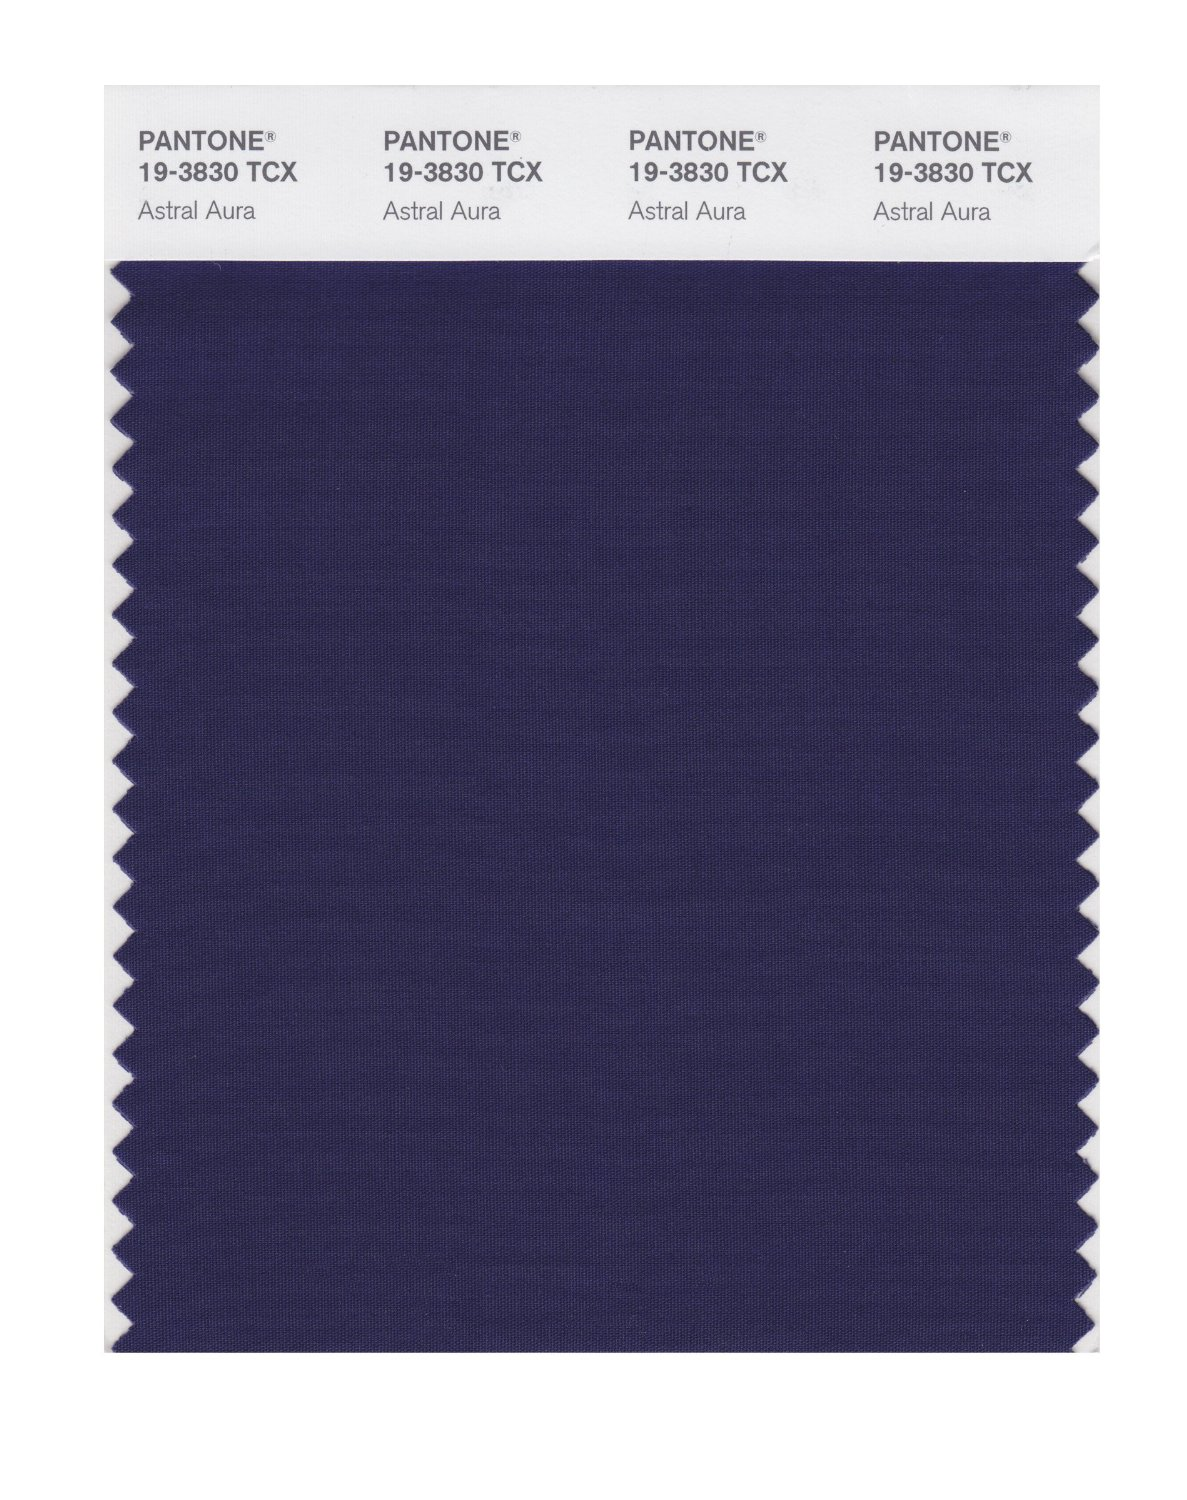 Pantone Smart Swatch 19-3830 Astral Aura